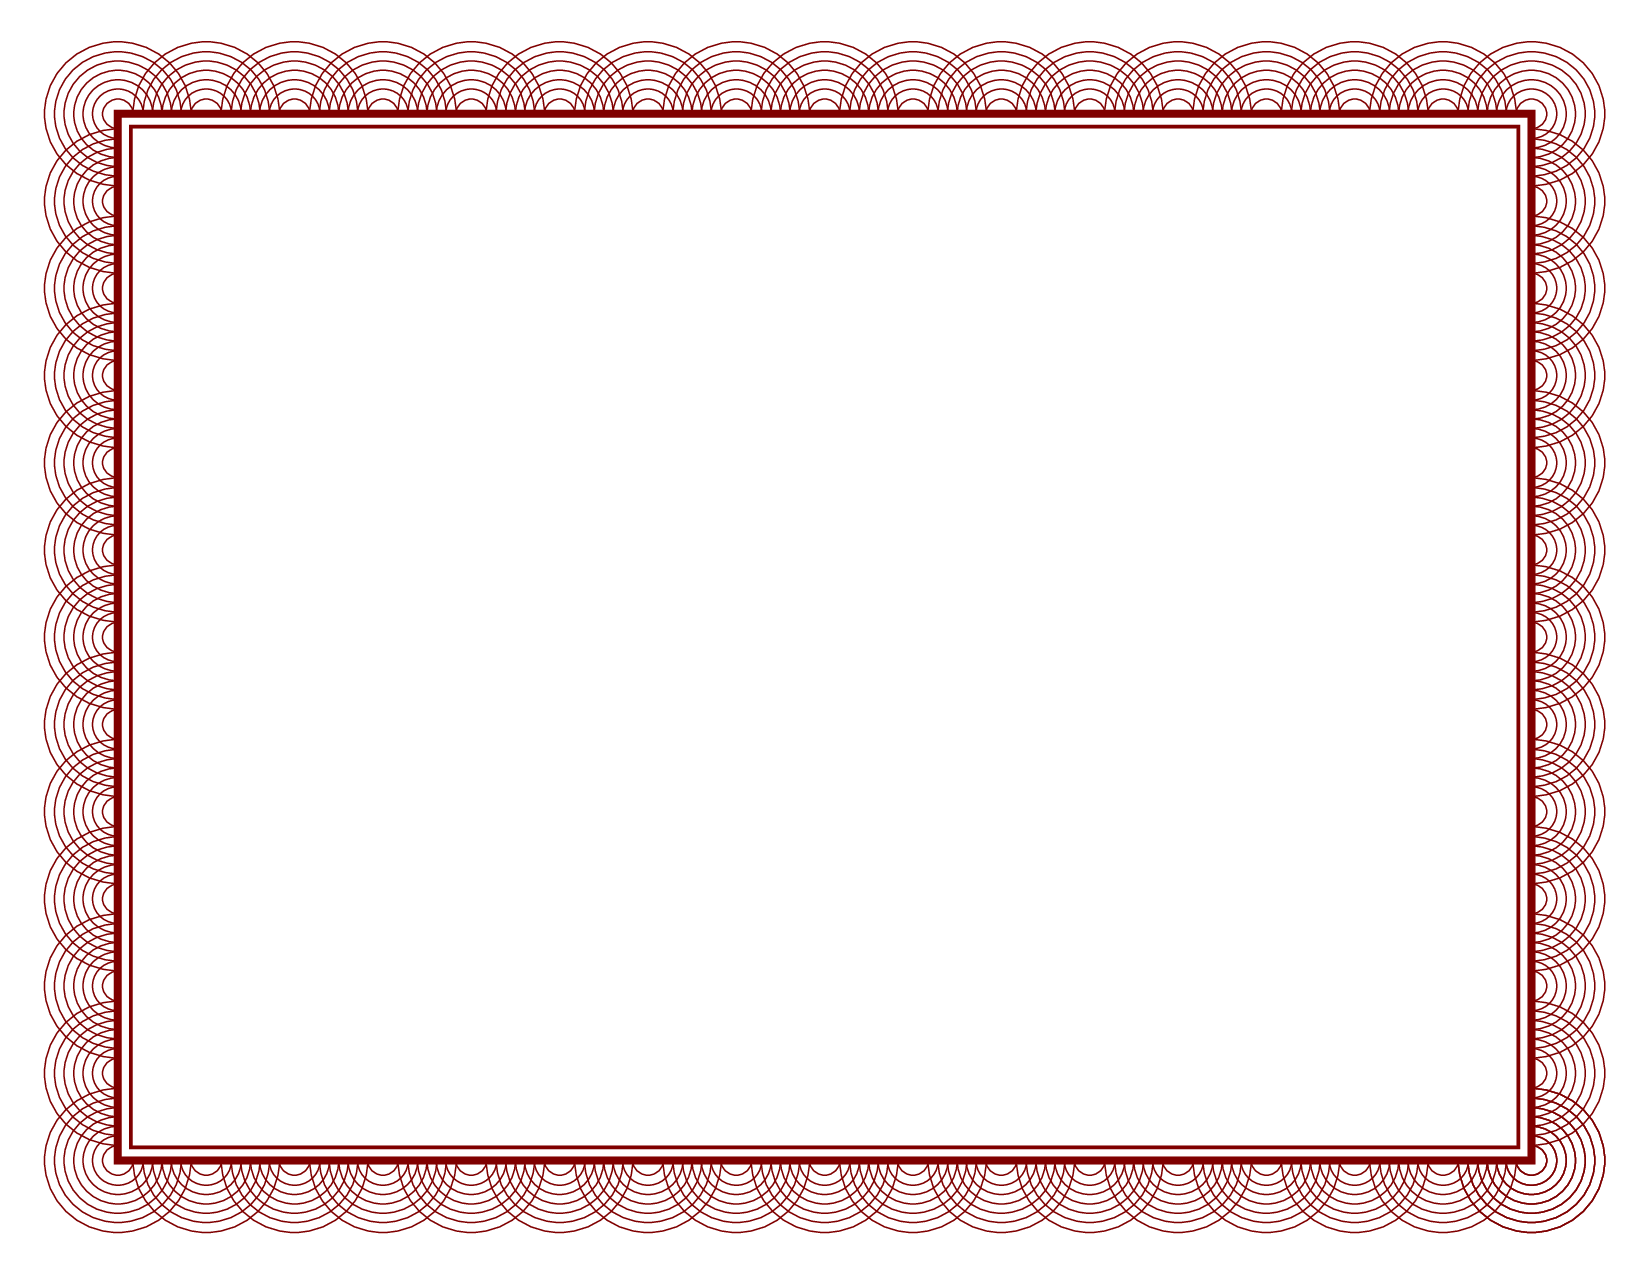 ... Free Certificate Border PSD and Certificate Frame Template